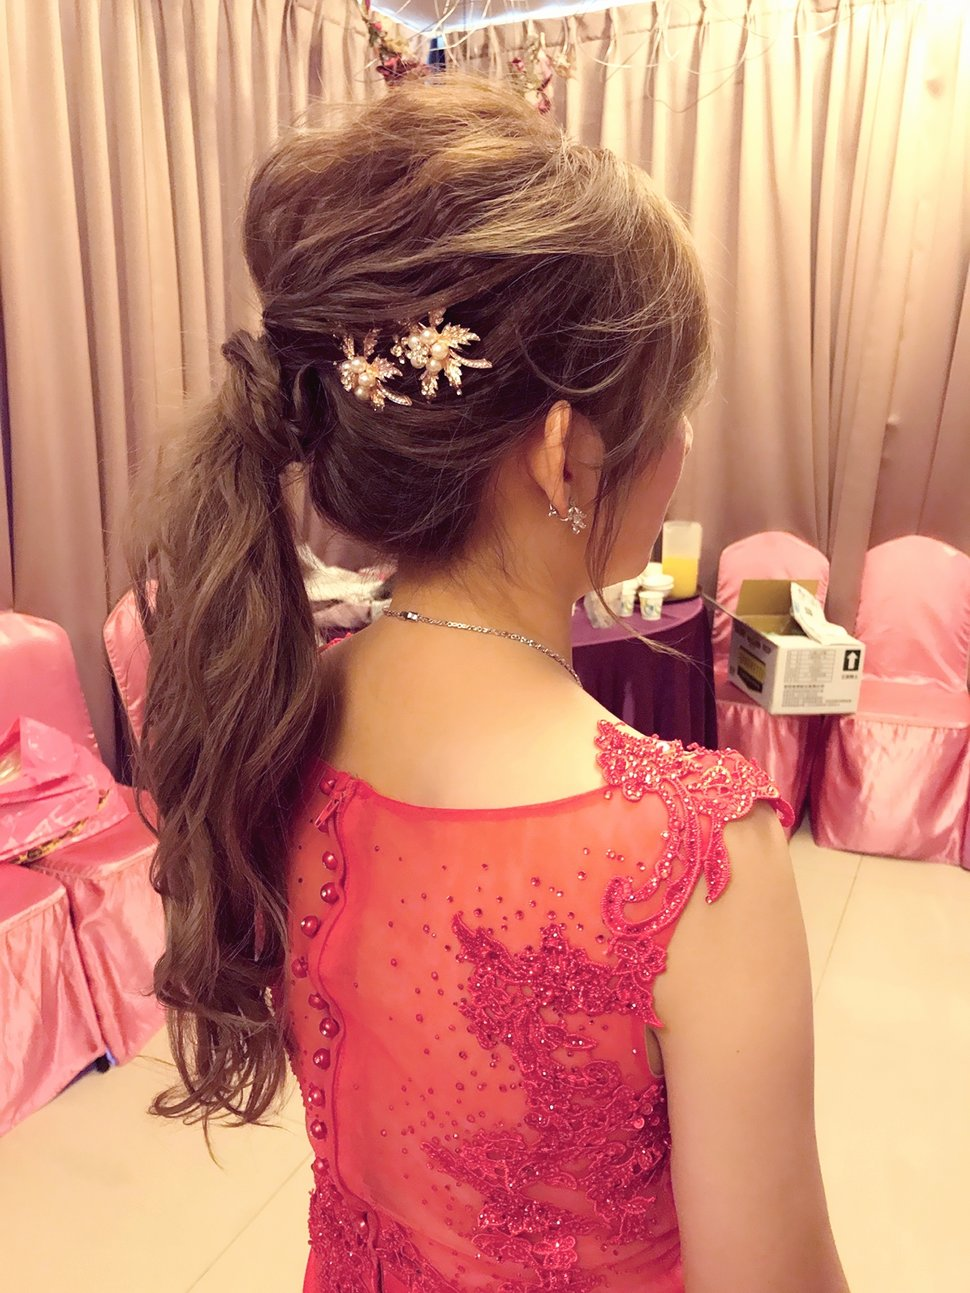 1508653233954_mr1508661568340 - Sofia makeup studio - 結婚吧